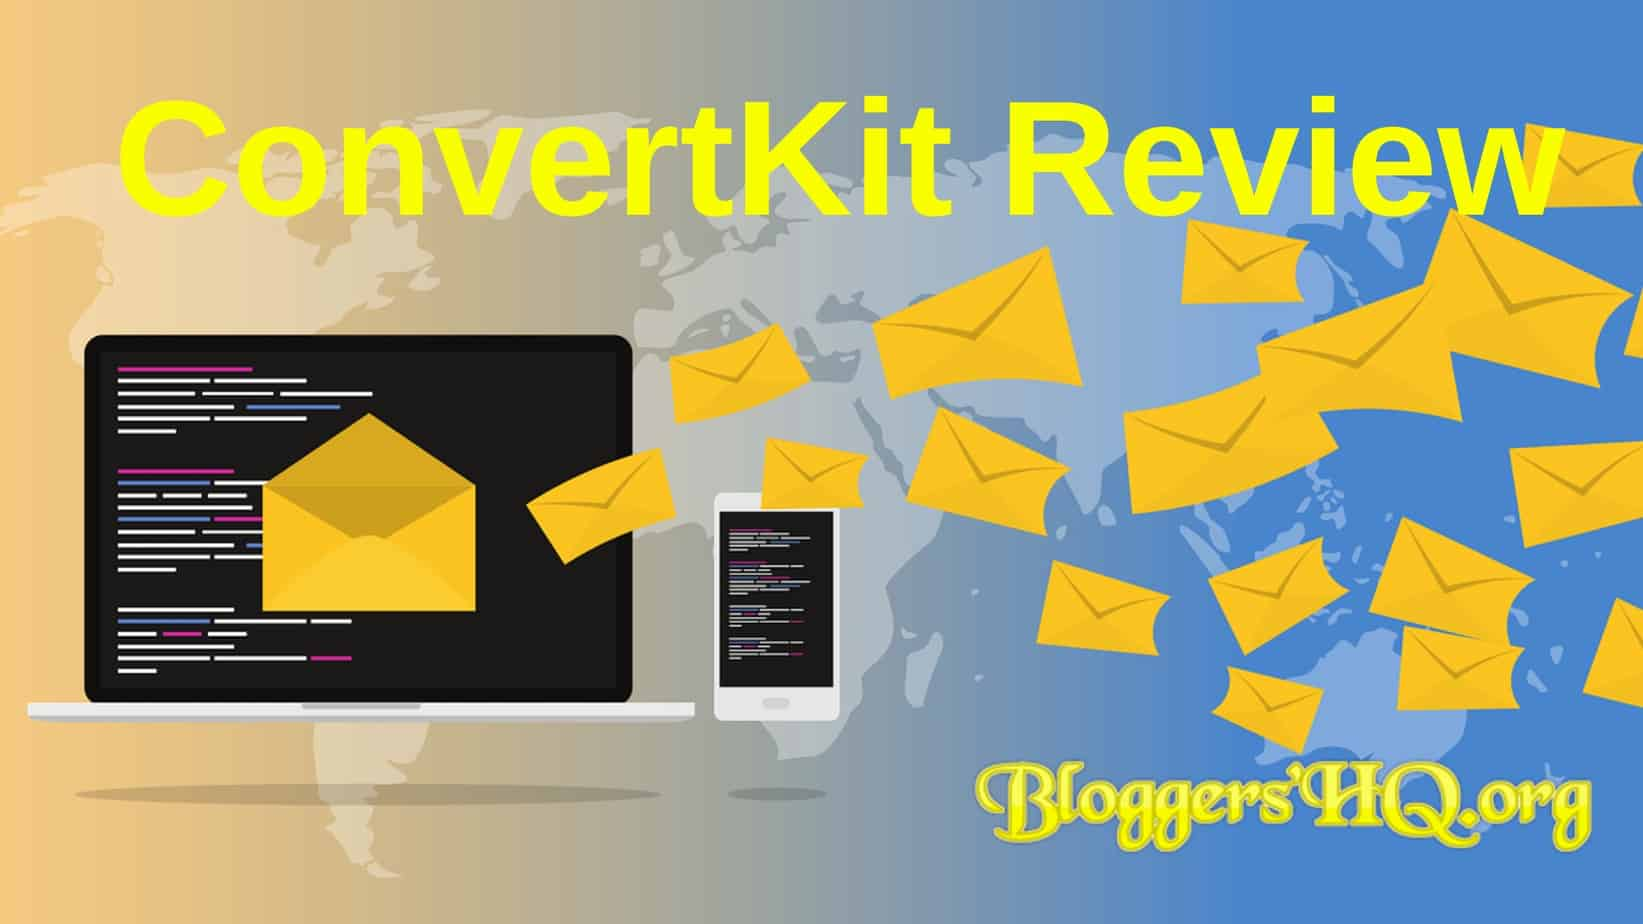 Convertkit Email Marketing 30 Percent Off Voucher Code May 2020